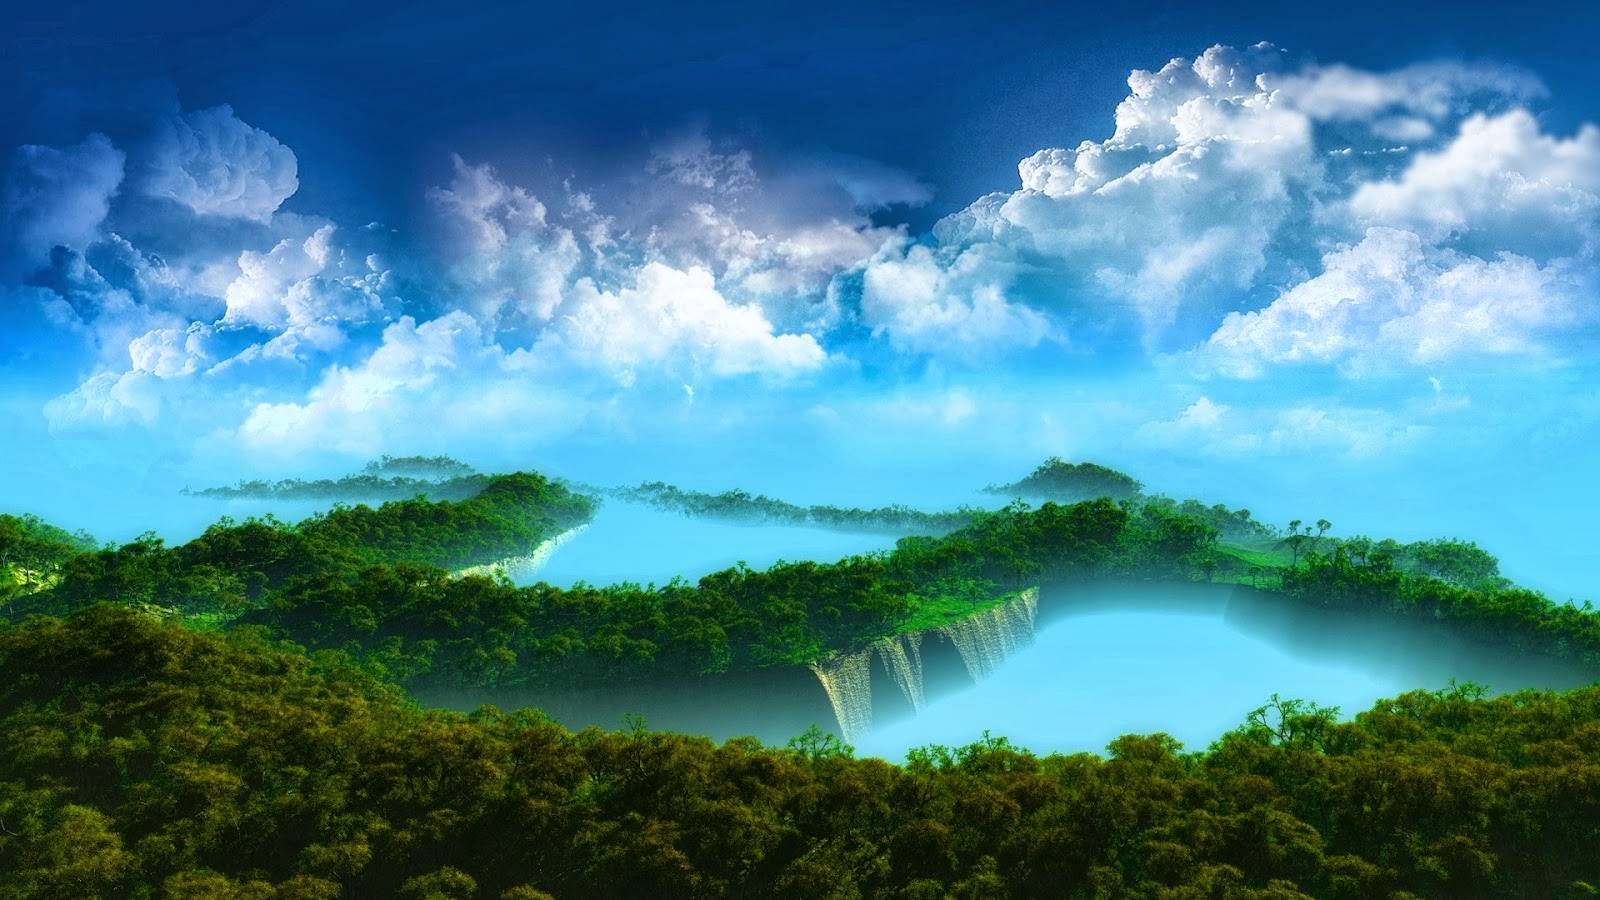 Full HD Nature Wallpapers Free Download For Laptop PC Desktop Background